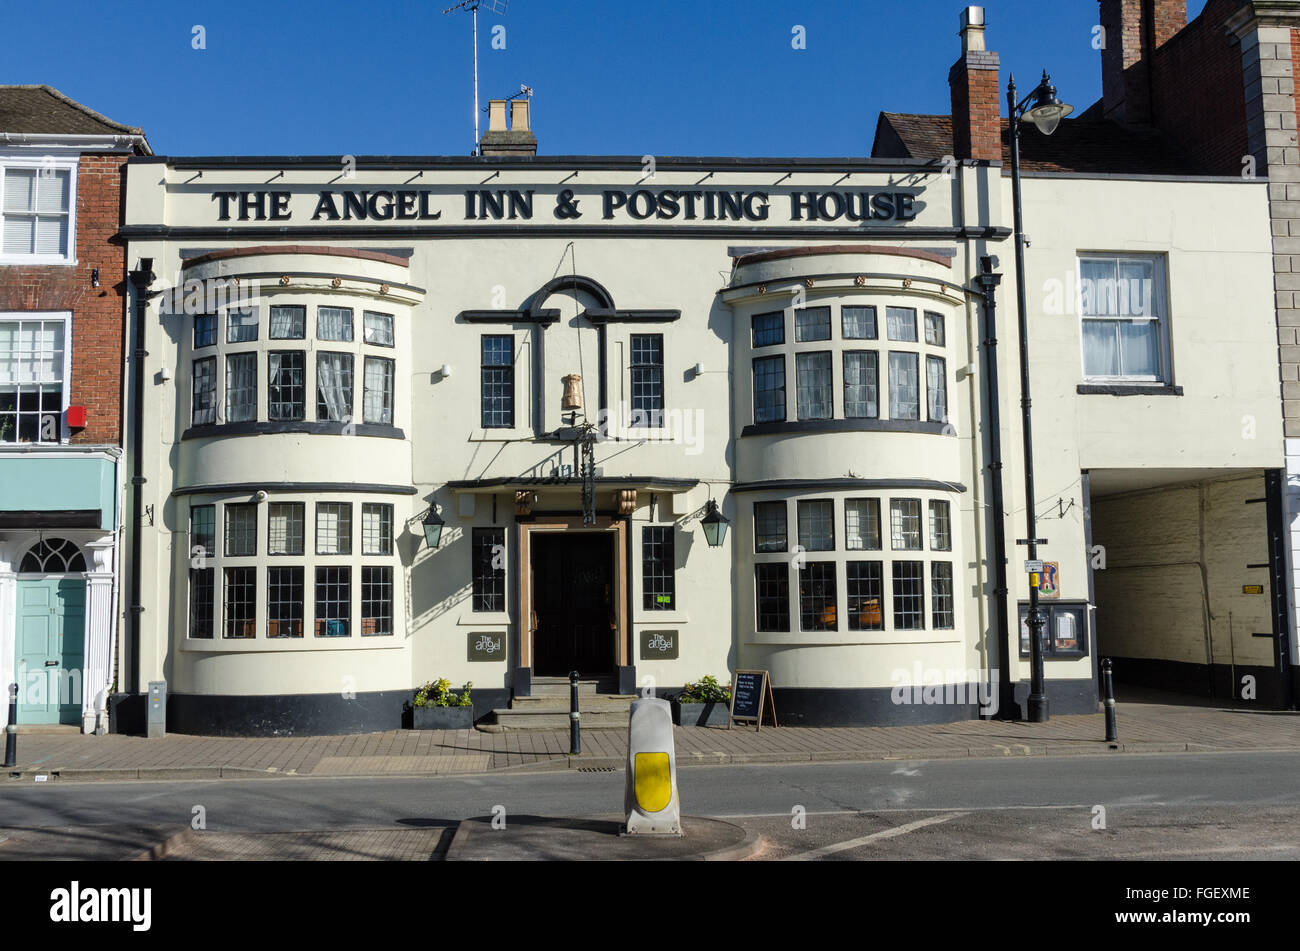 The Angel Inn and Posting House in Pershore, Worcestershire - Stock Image